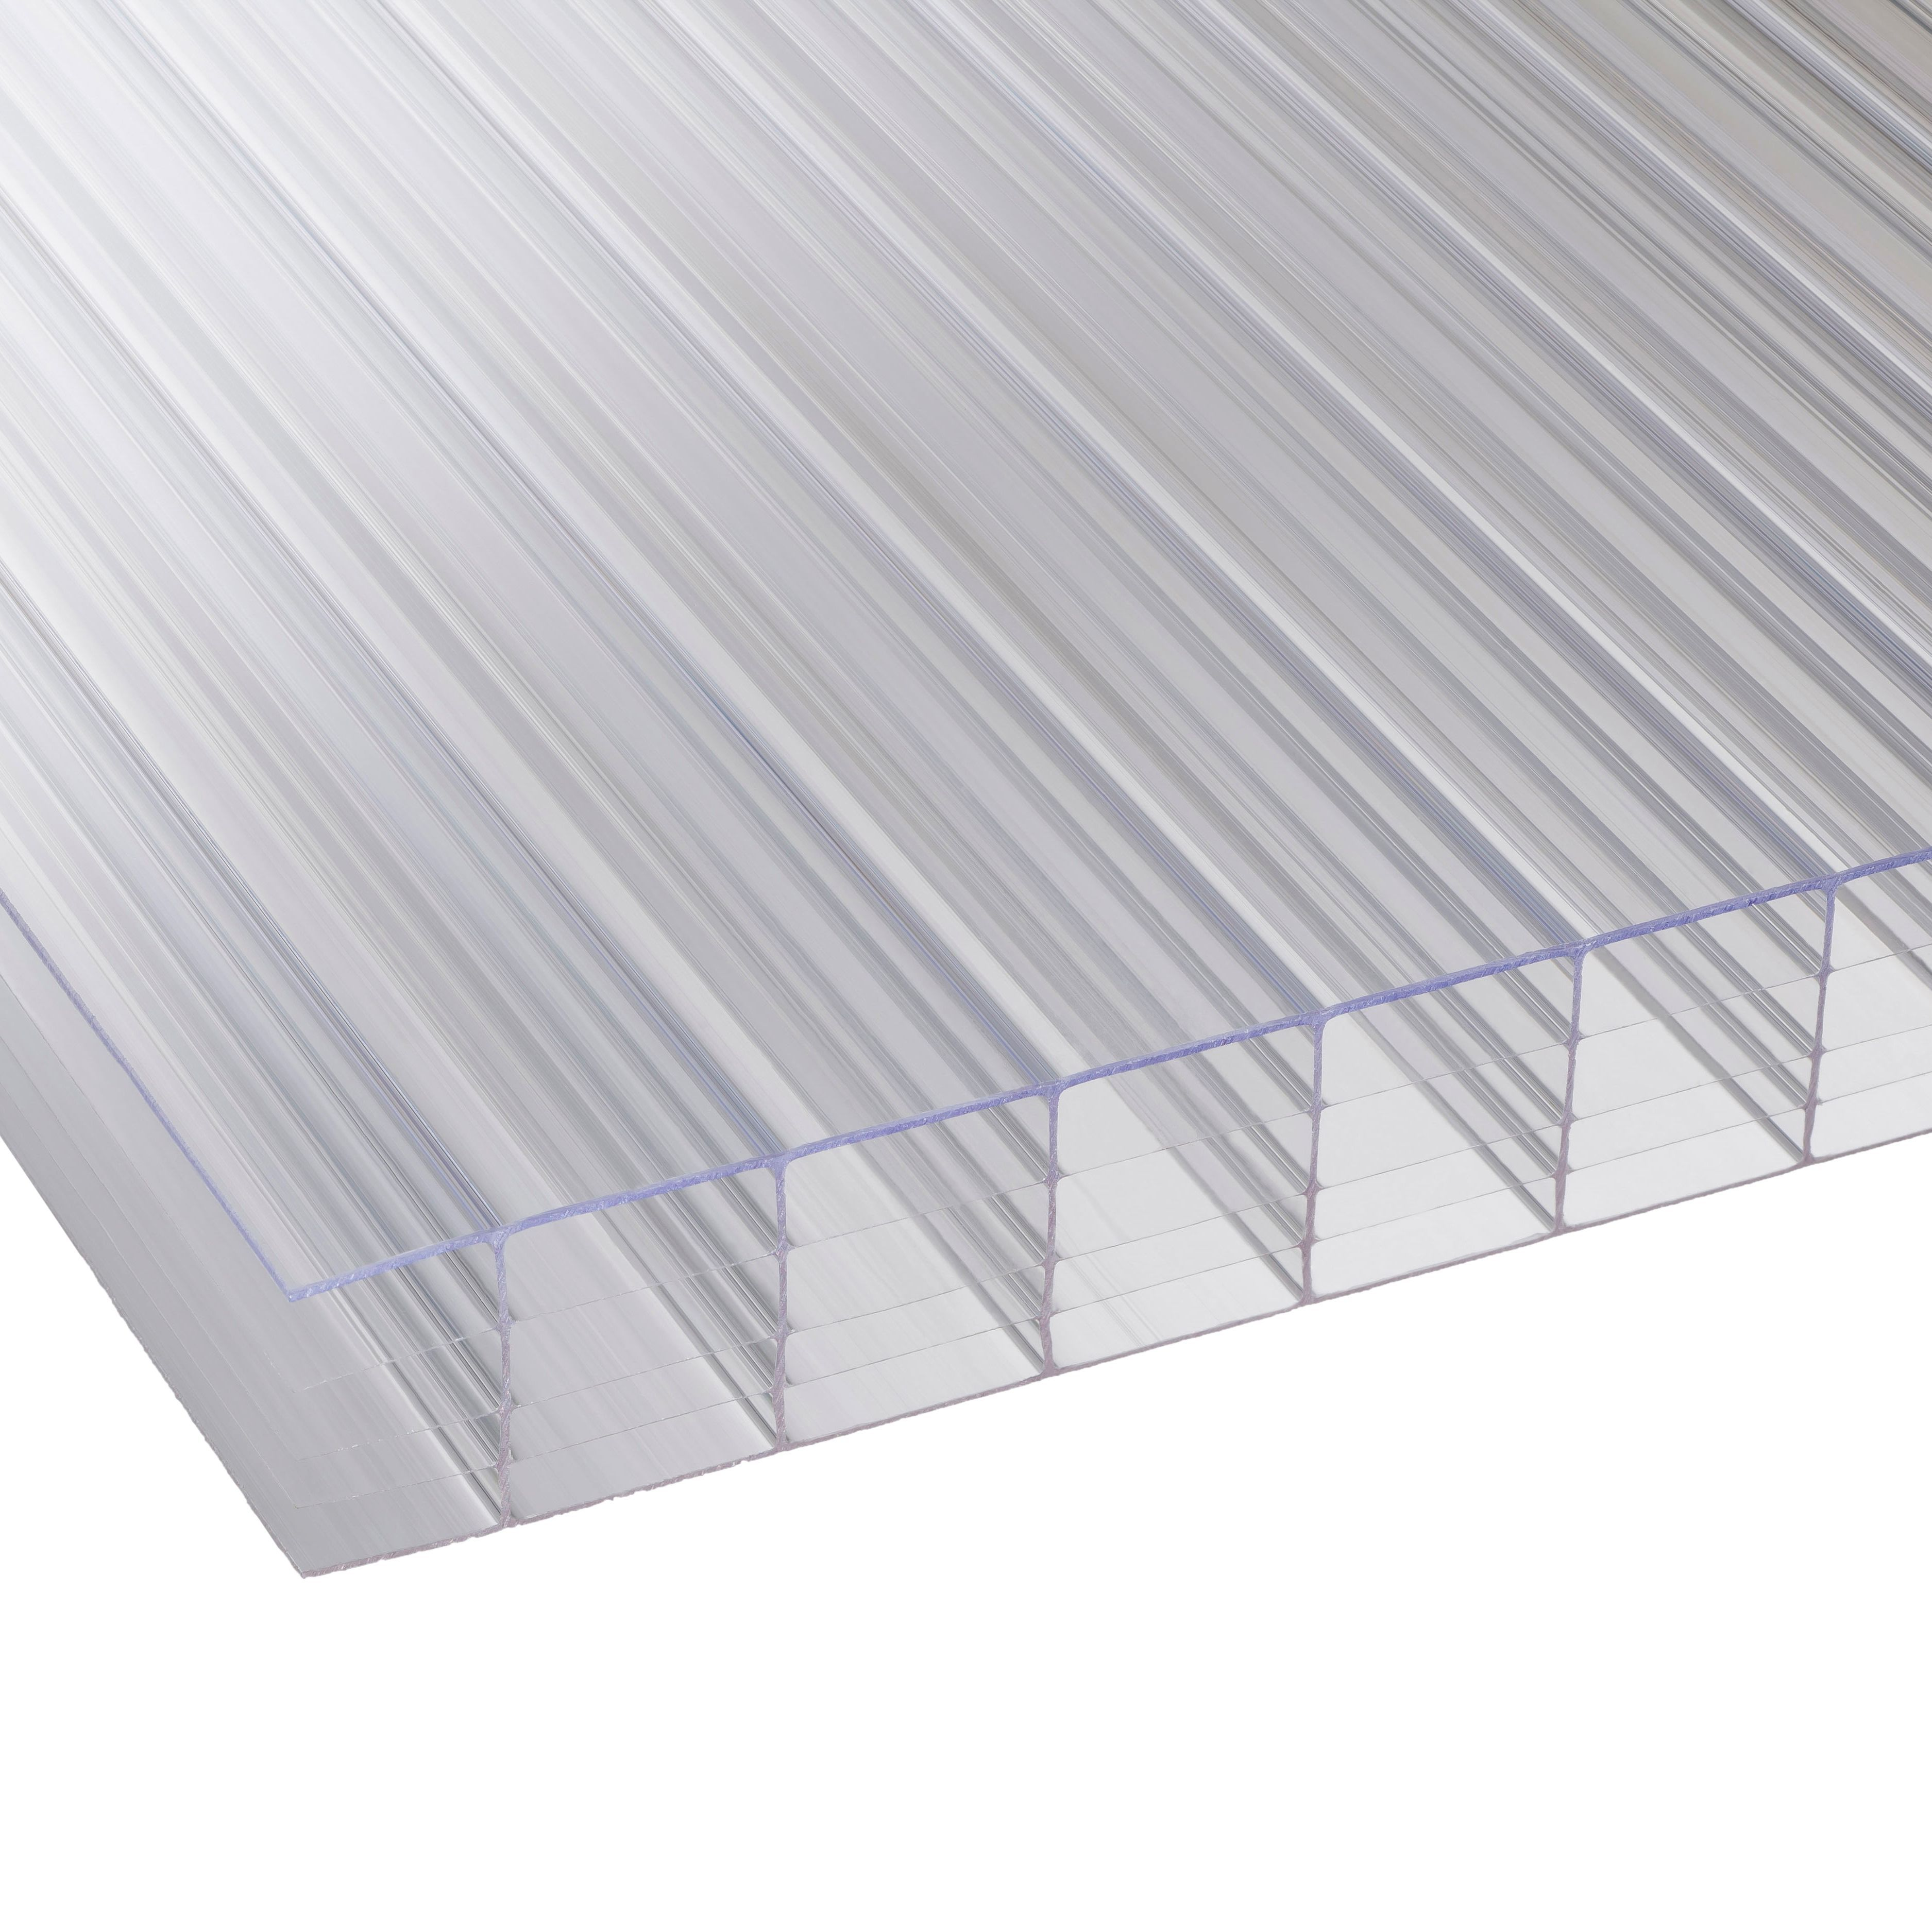 Clear Multiwall Polycarbonate Roofing Sheet 2.5m X 1050mm, Pack Of 5